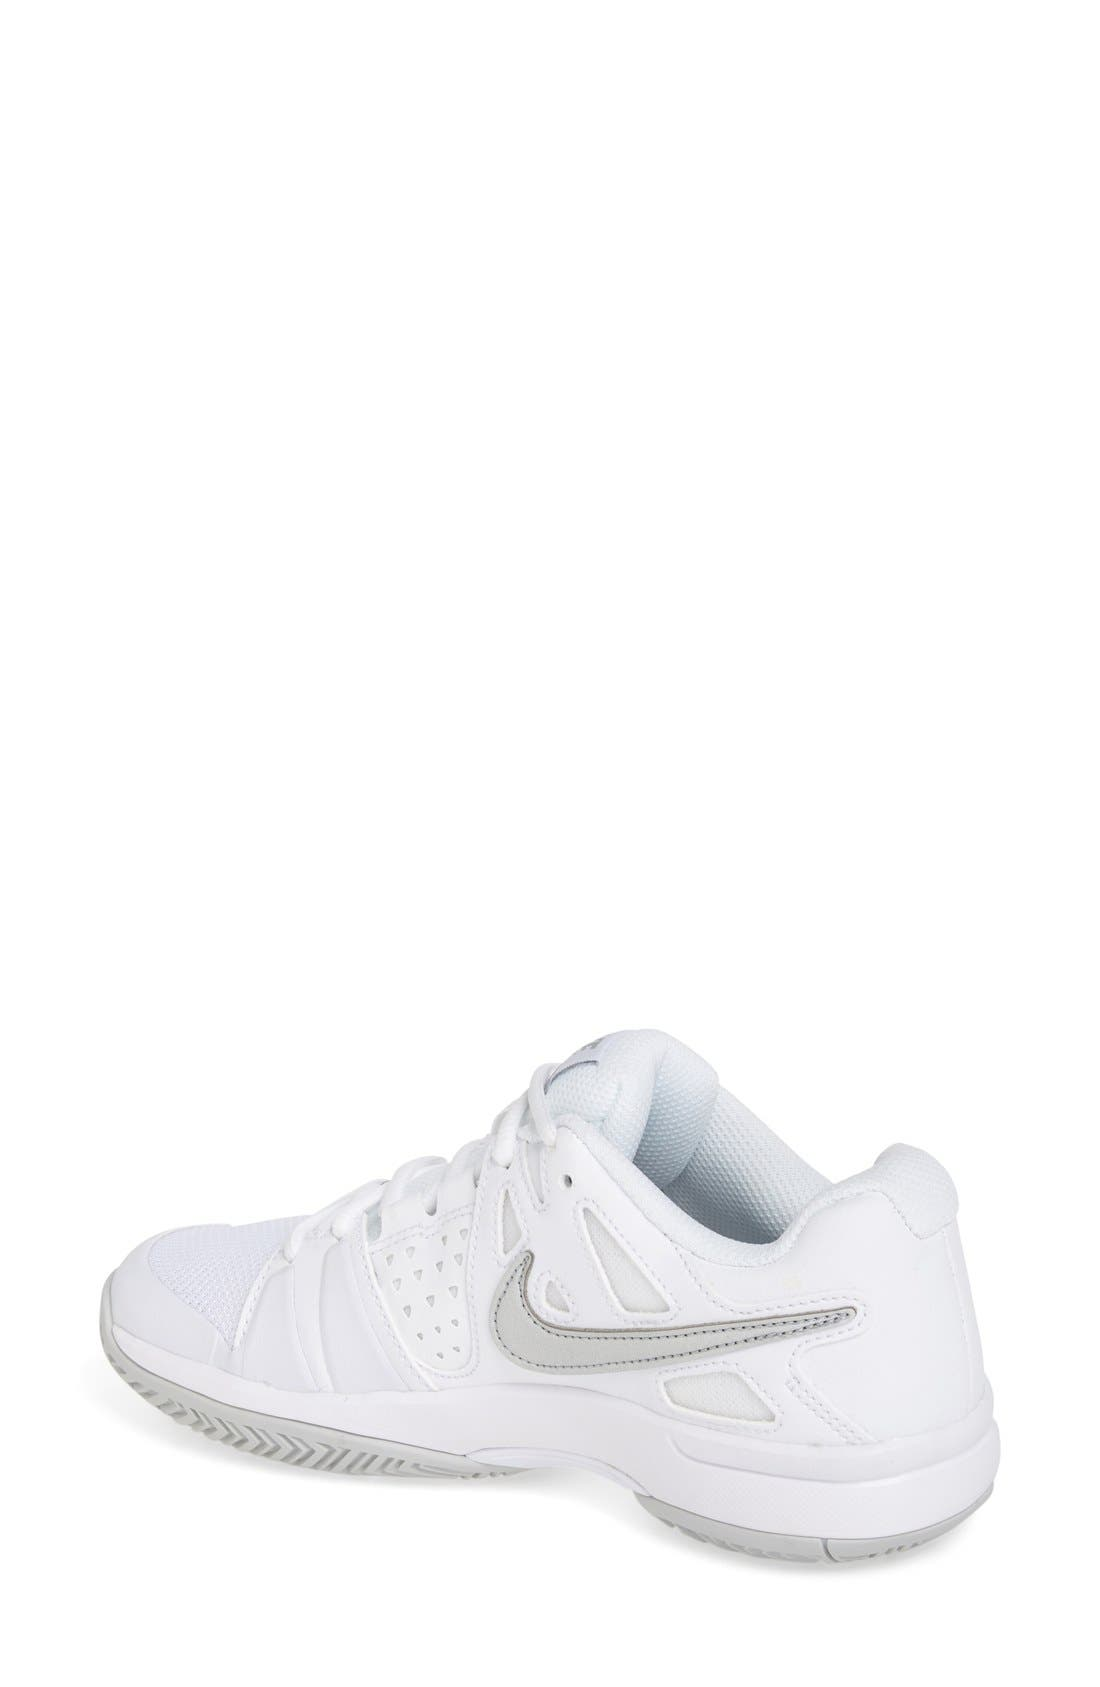 Alternate Image 2  - Nike 'Air Vapor Advantage' Tennis Shoe (Women)